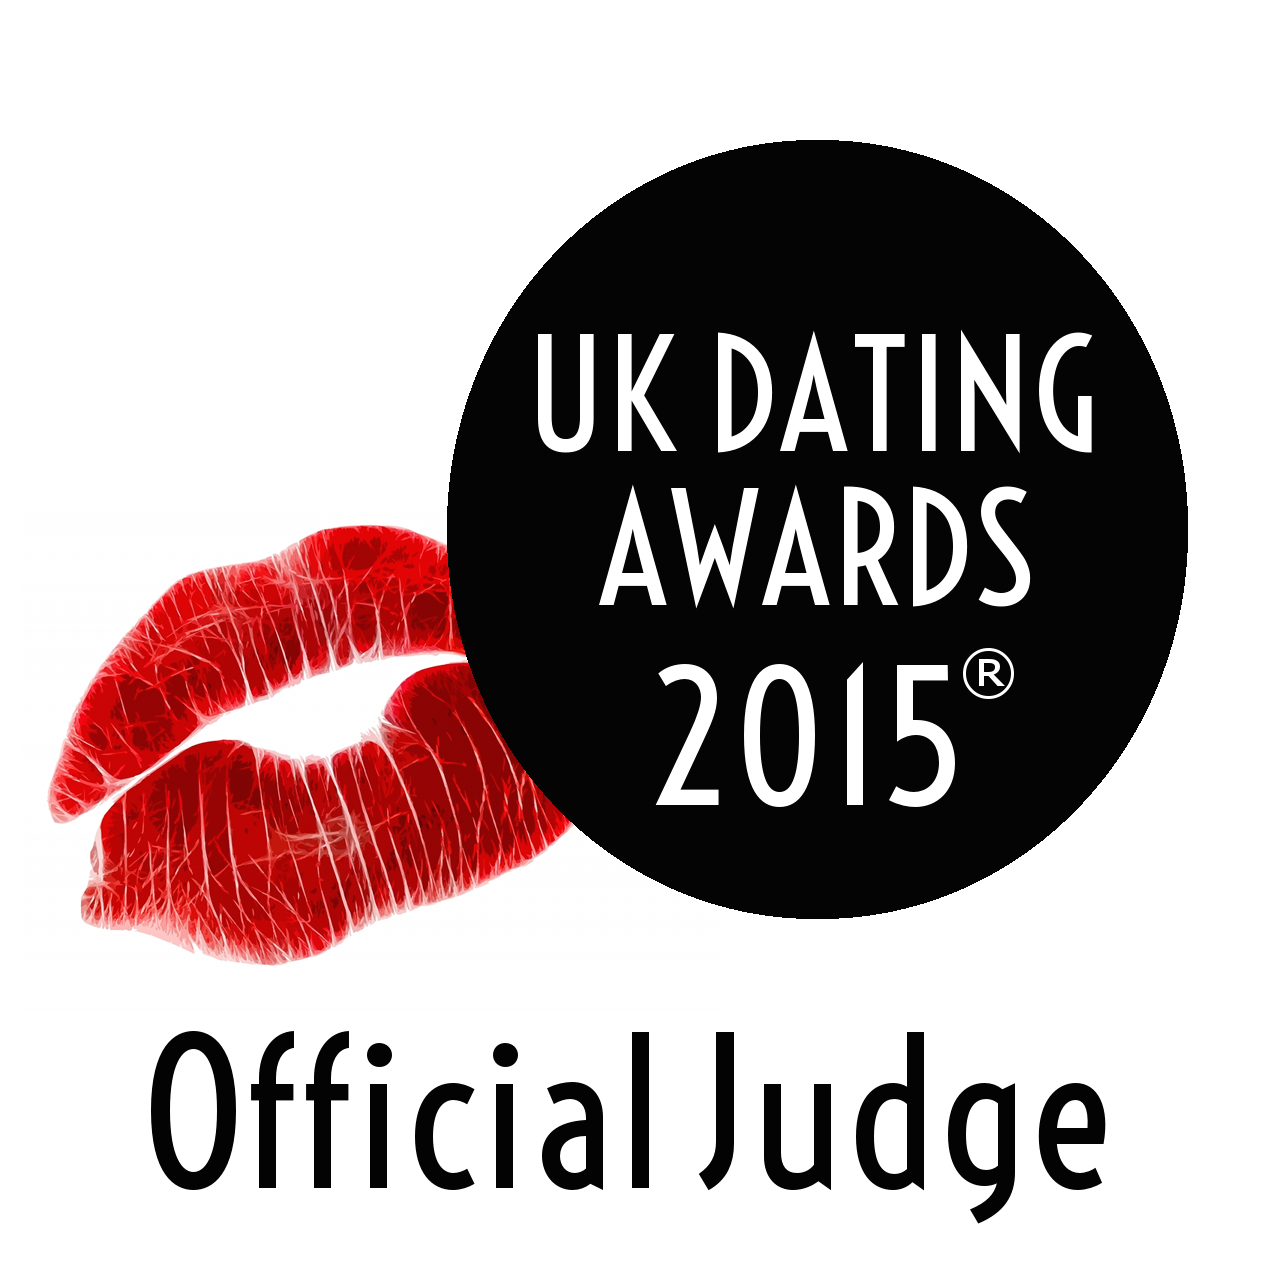 Our founding matchmaker Caroline Brealey is to be the Head Judge at the 2015 UK Dating Awards! We are so proud :)